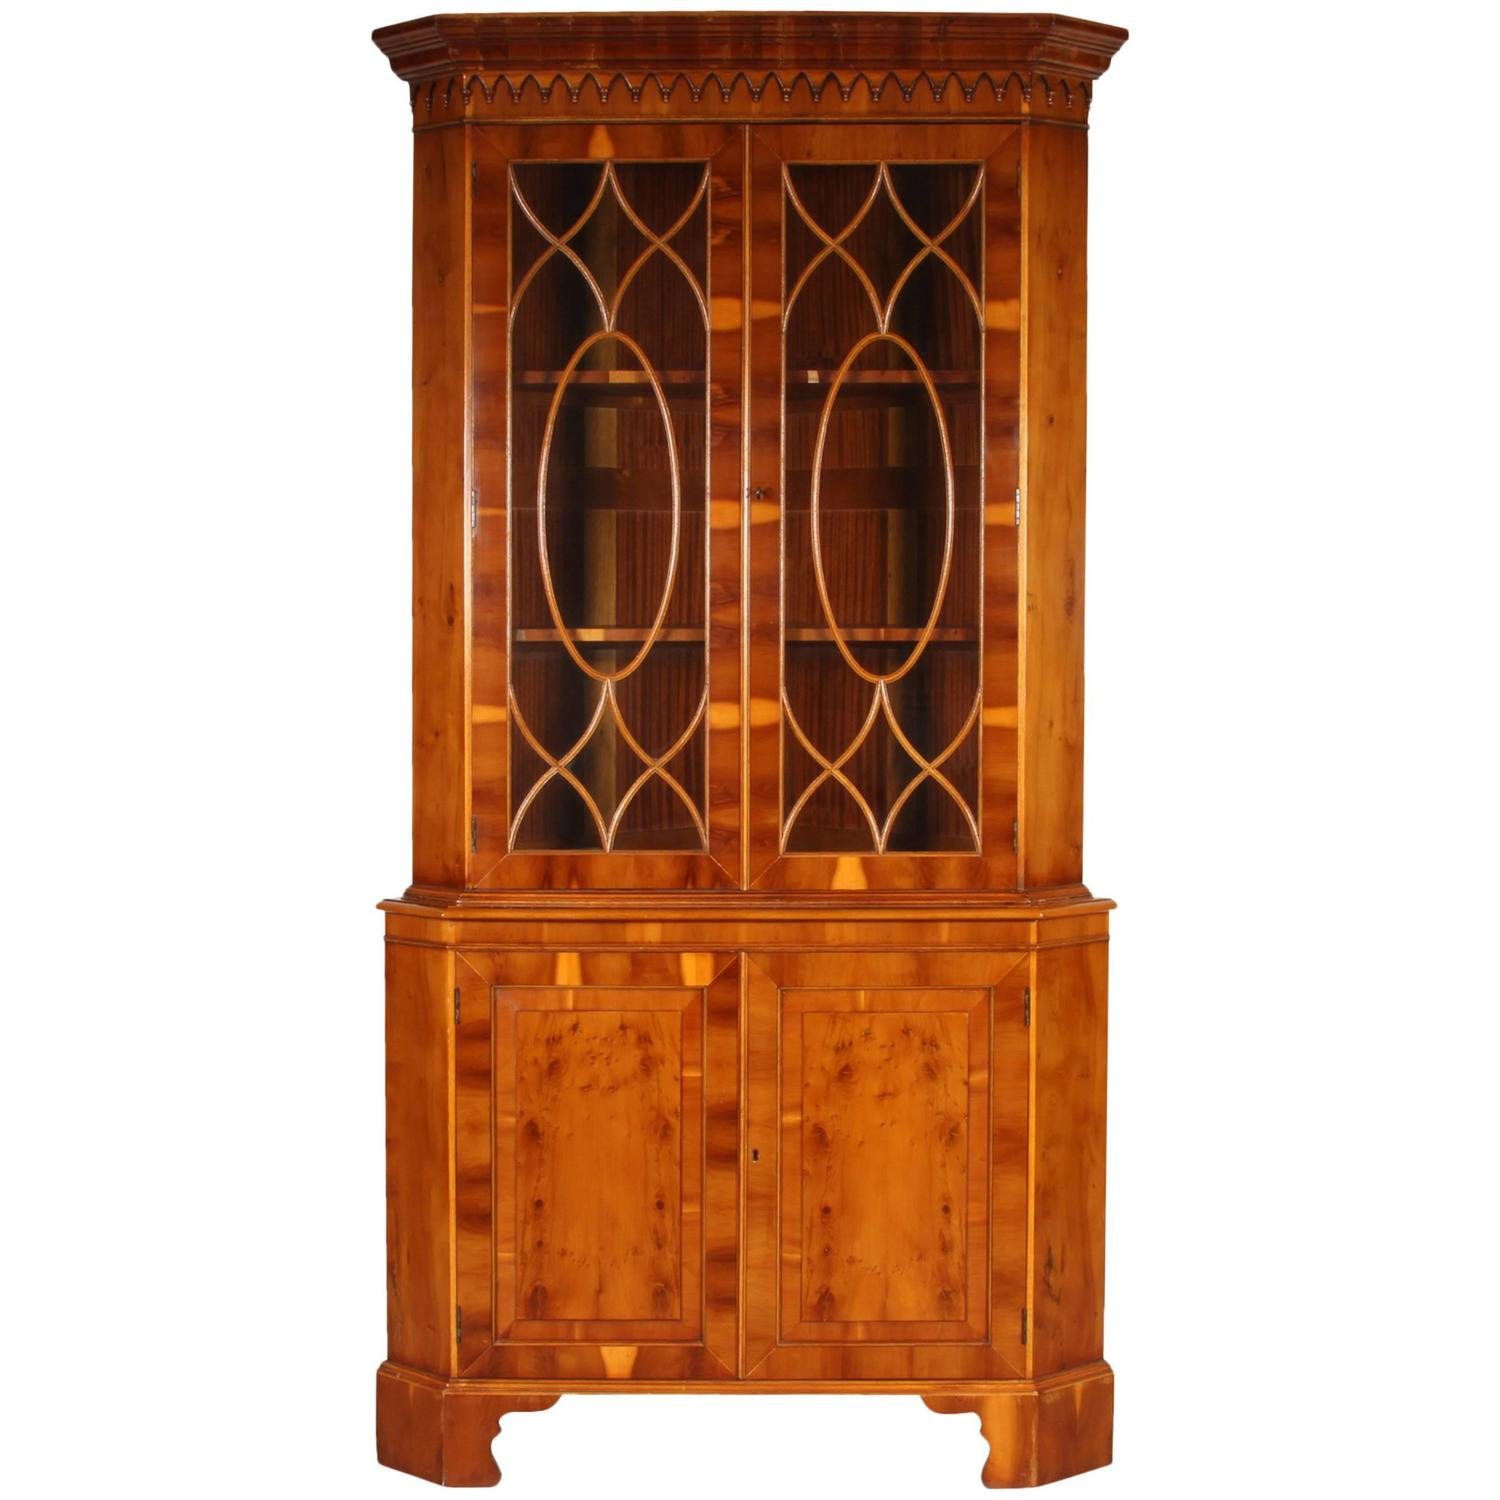 Yew Wood Corner Cabinet For Sale At 1stdibs